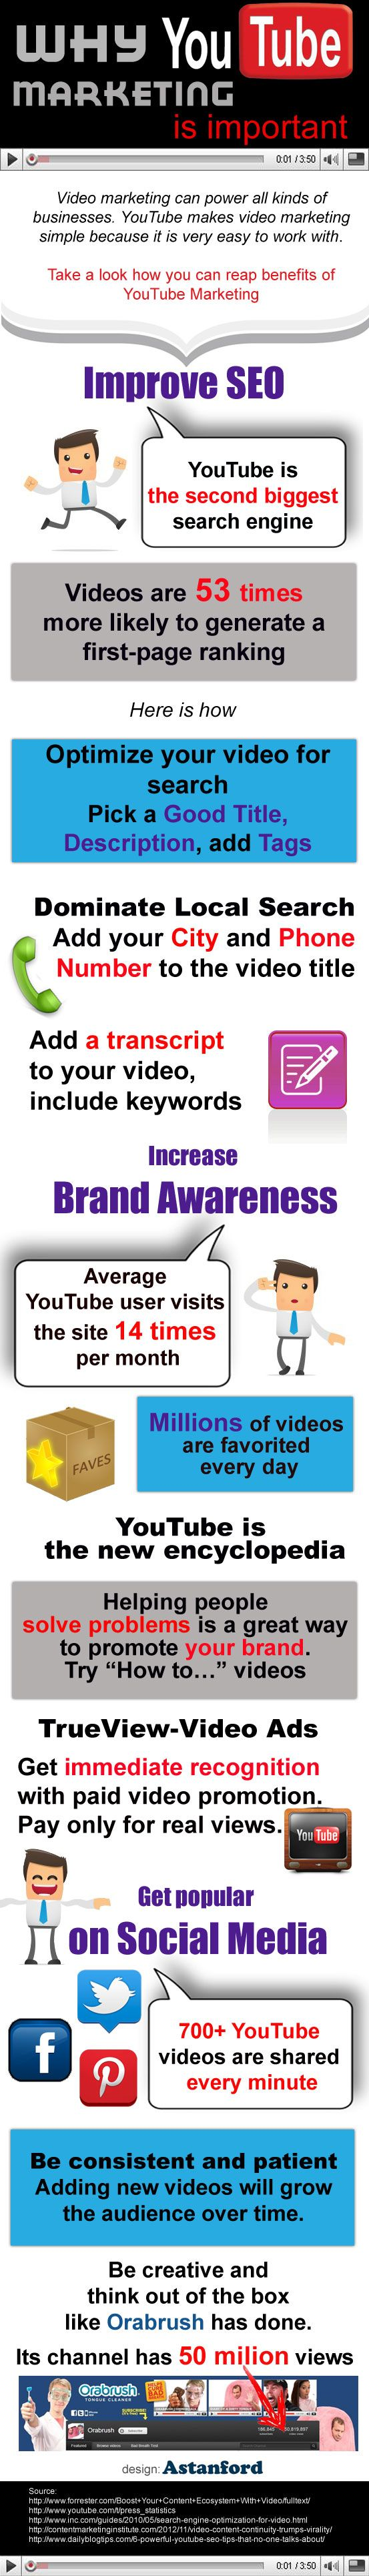 YouTube is one of the fastest growing social media platforms and this infographic further explains why Youtube marketing is so important